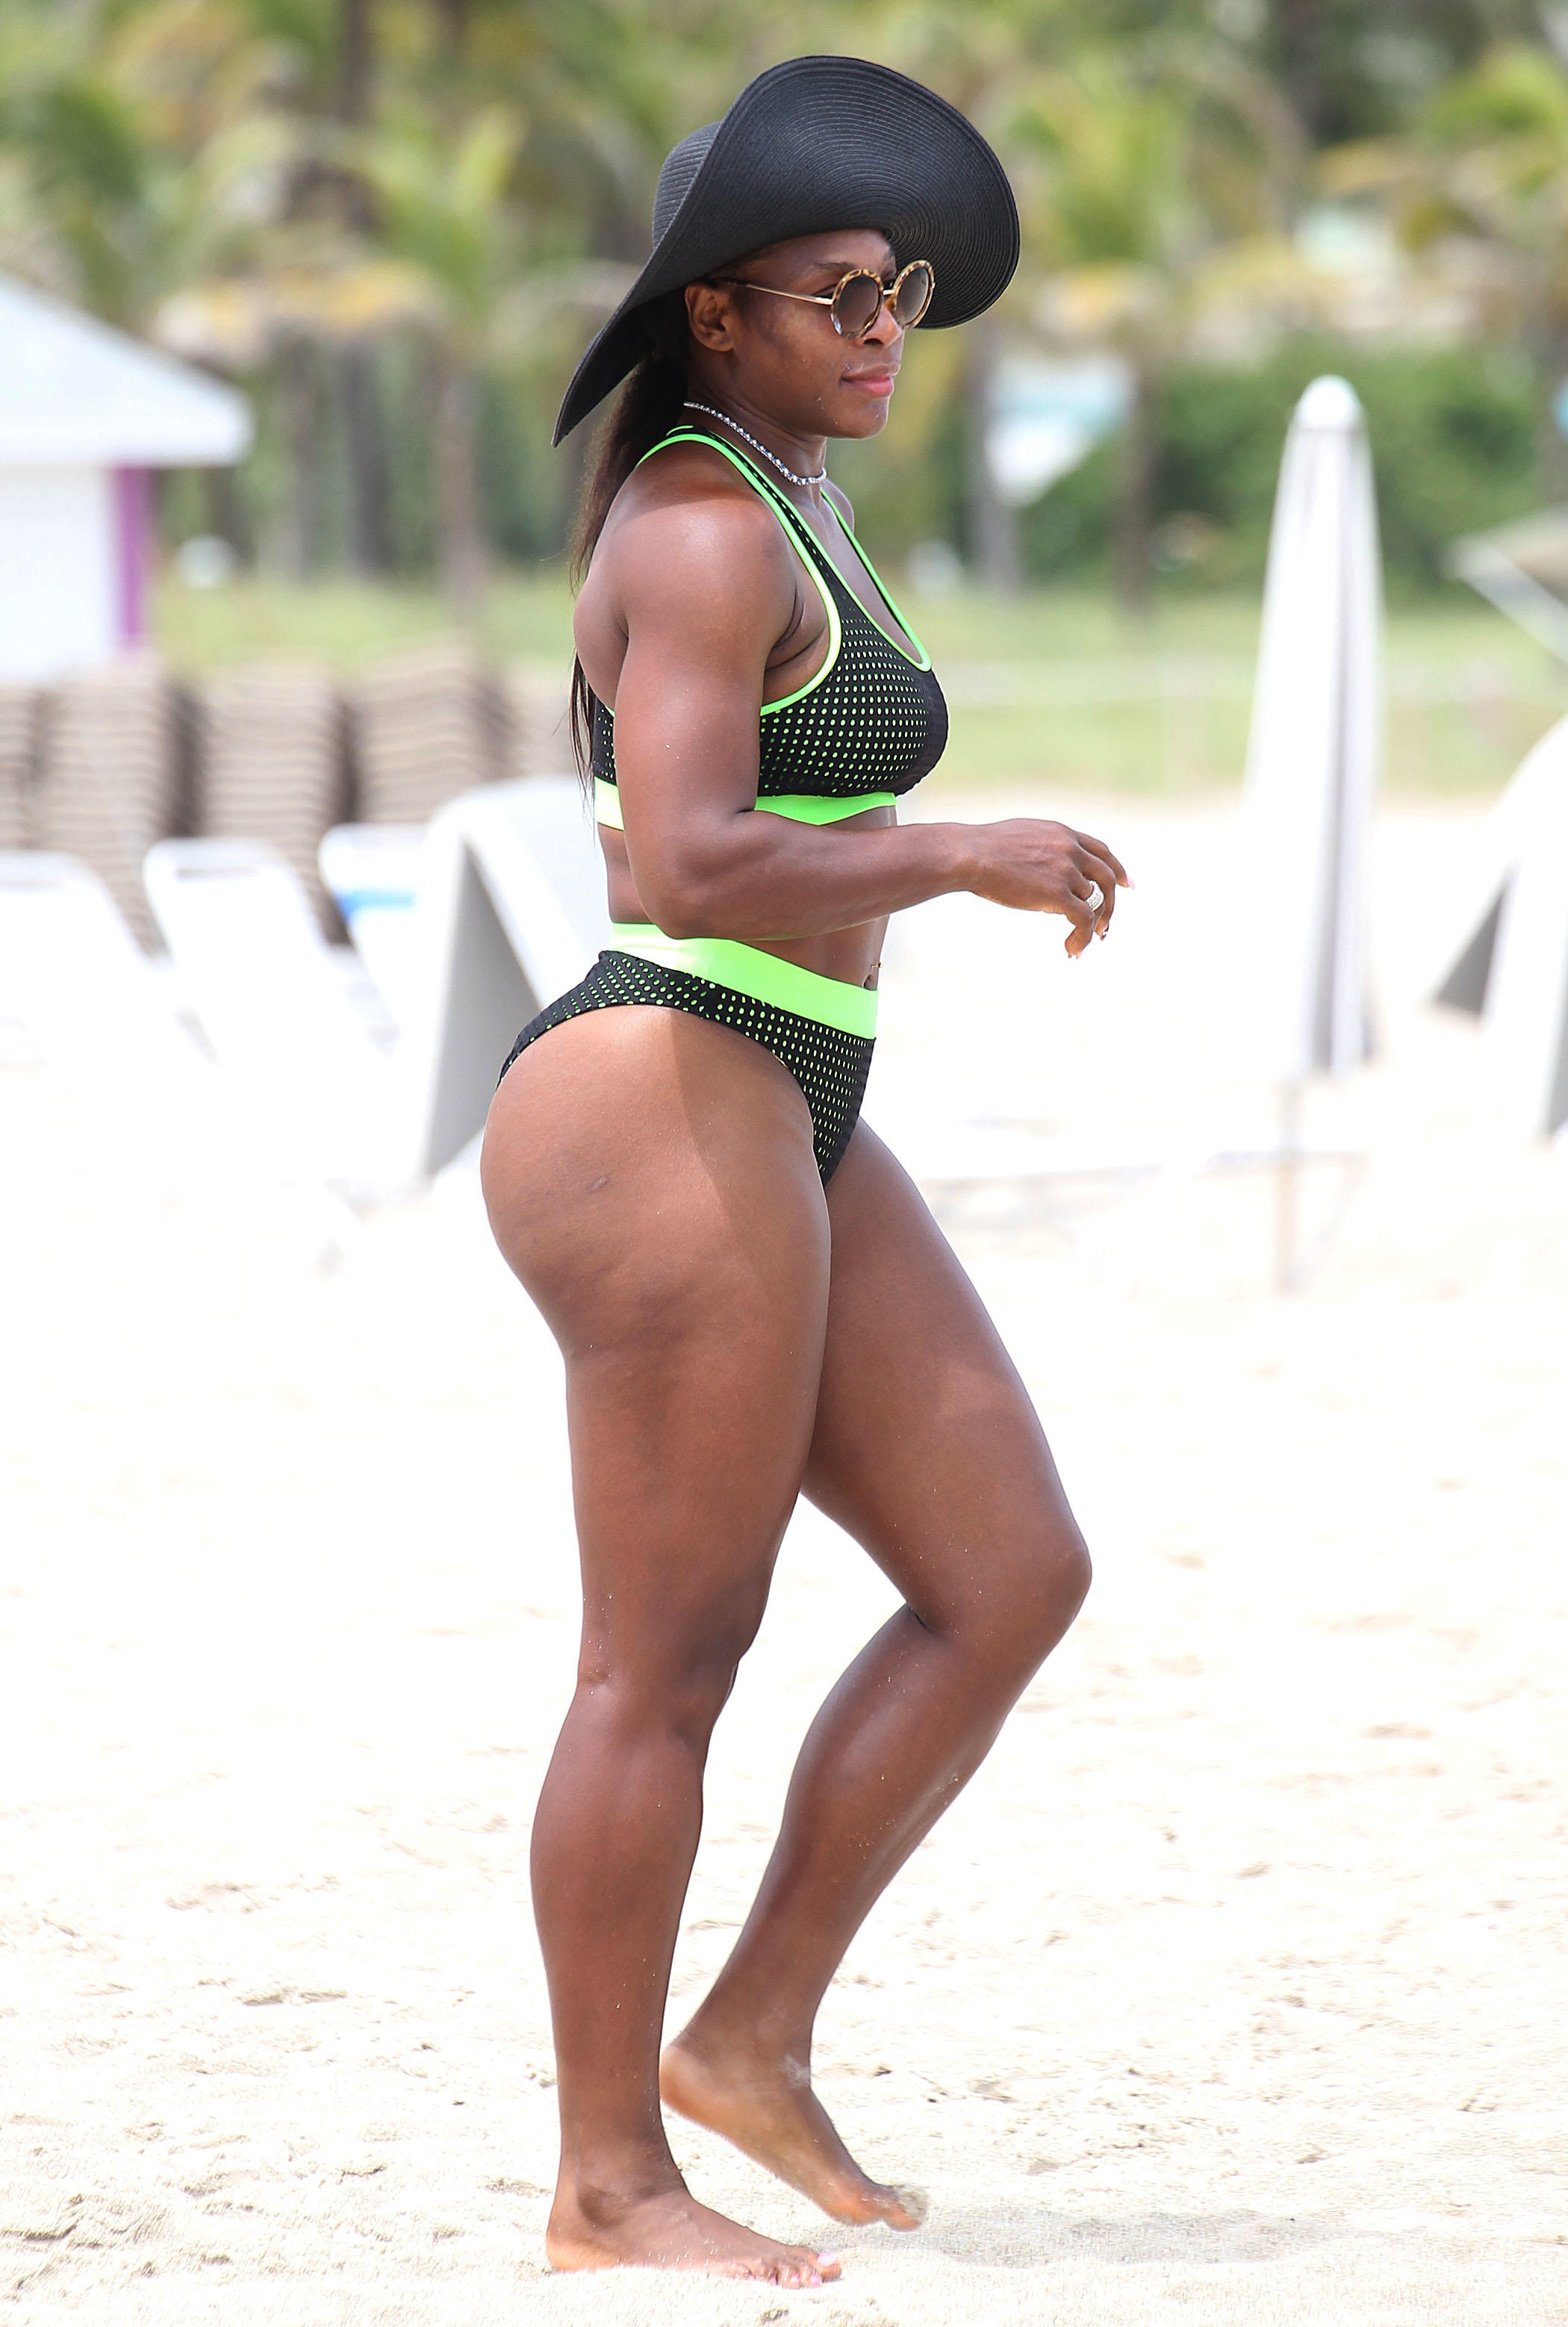 did serena win today